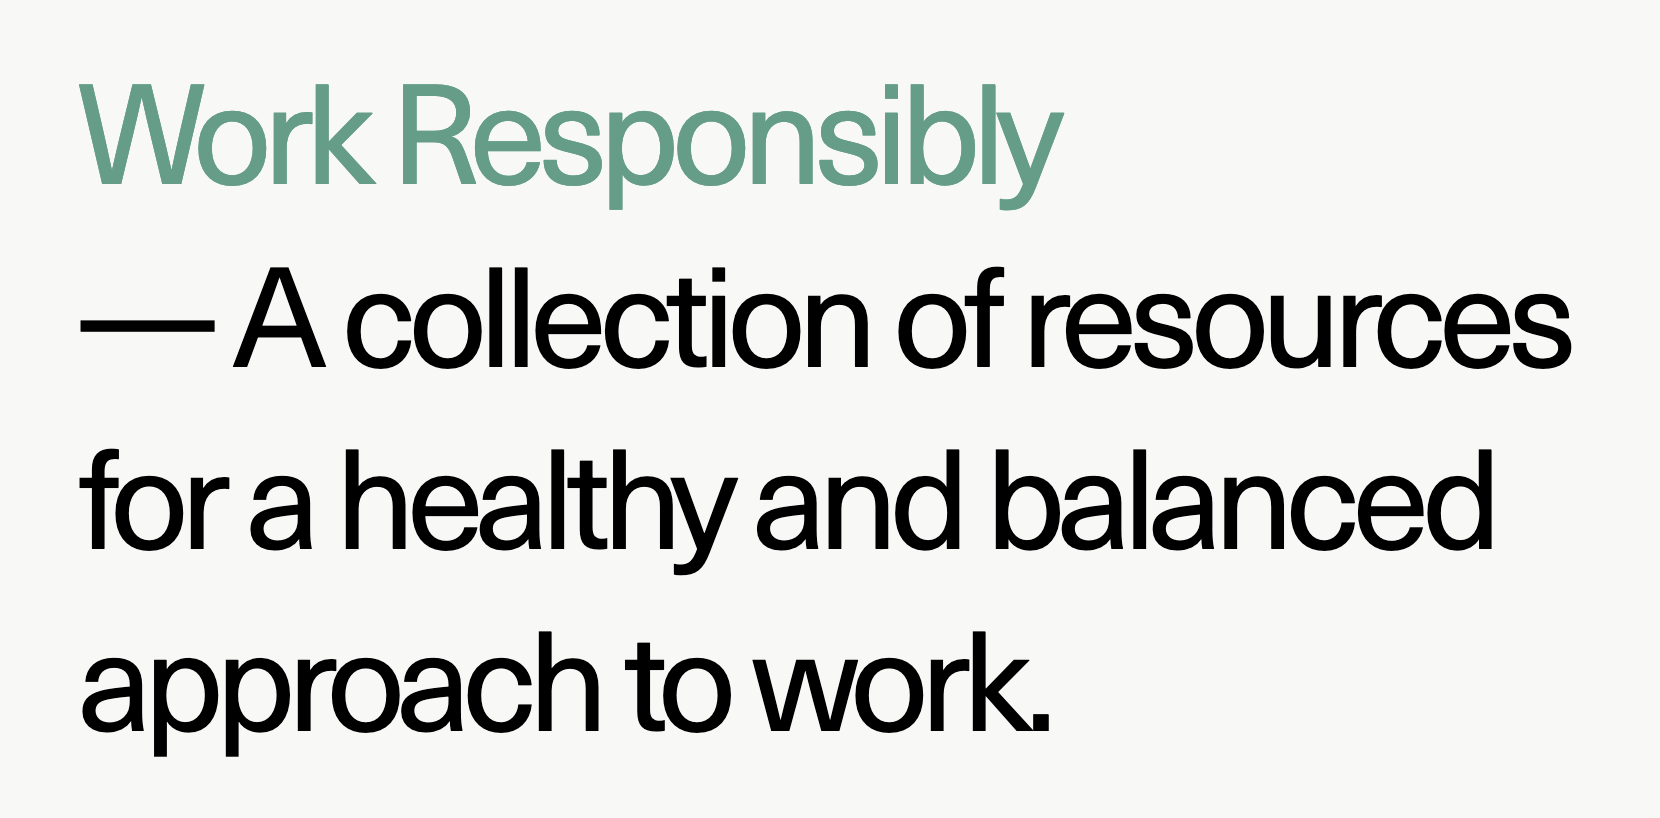 Work Responsibly — A collection of resources for a healthy and balanced approach to work.